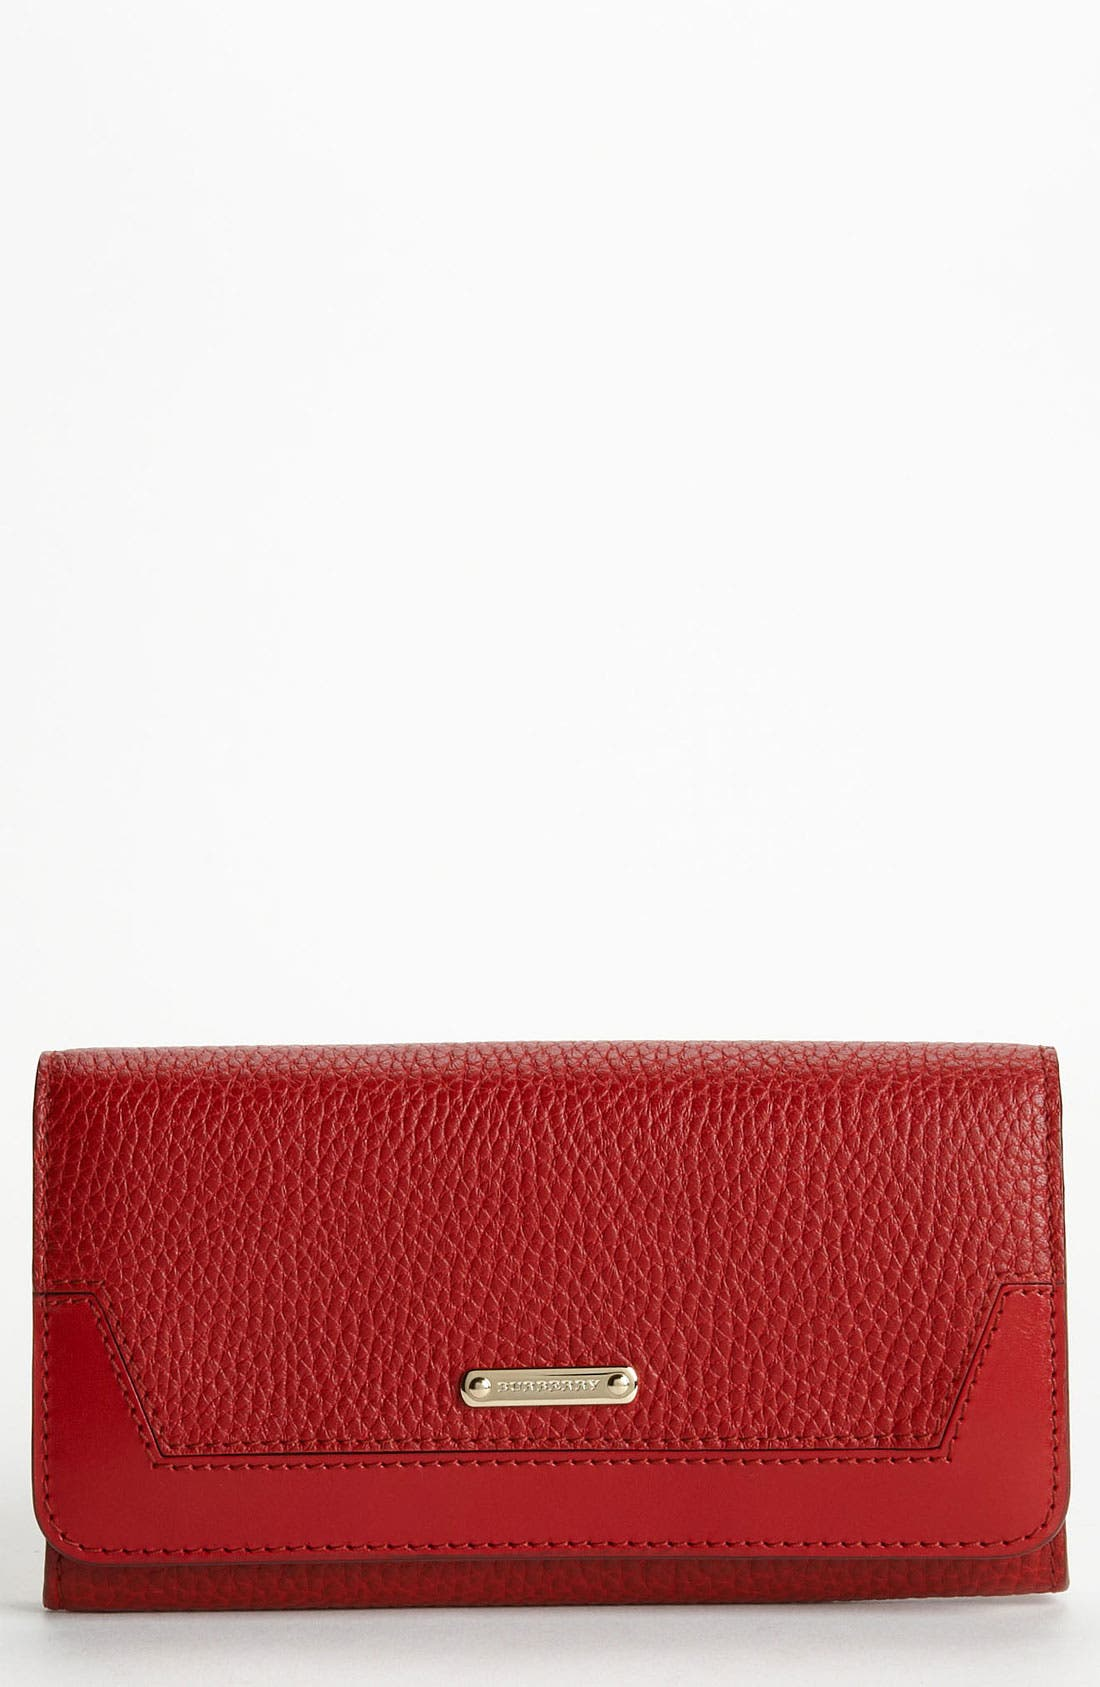 Alternate Image 1 Selected - Burberry 'London Grainy' Flap Wallet